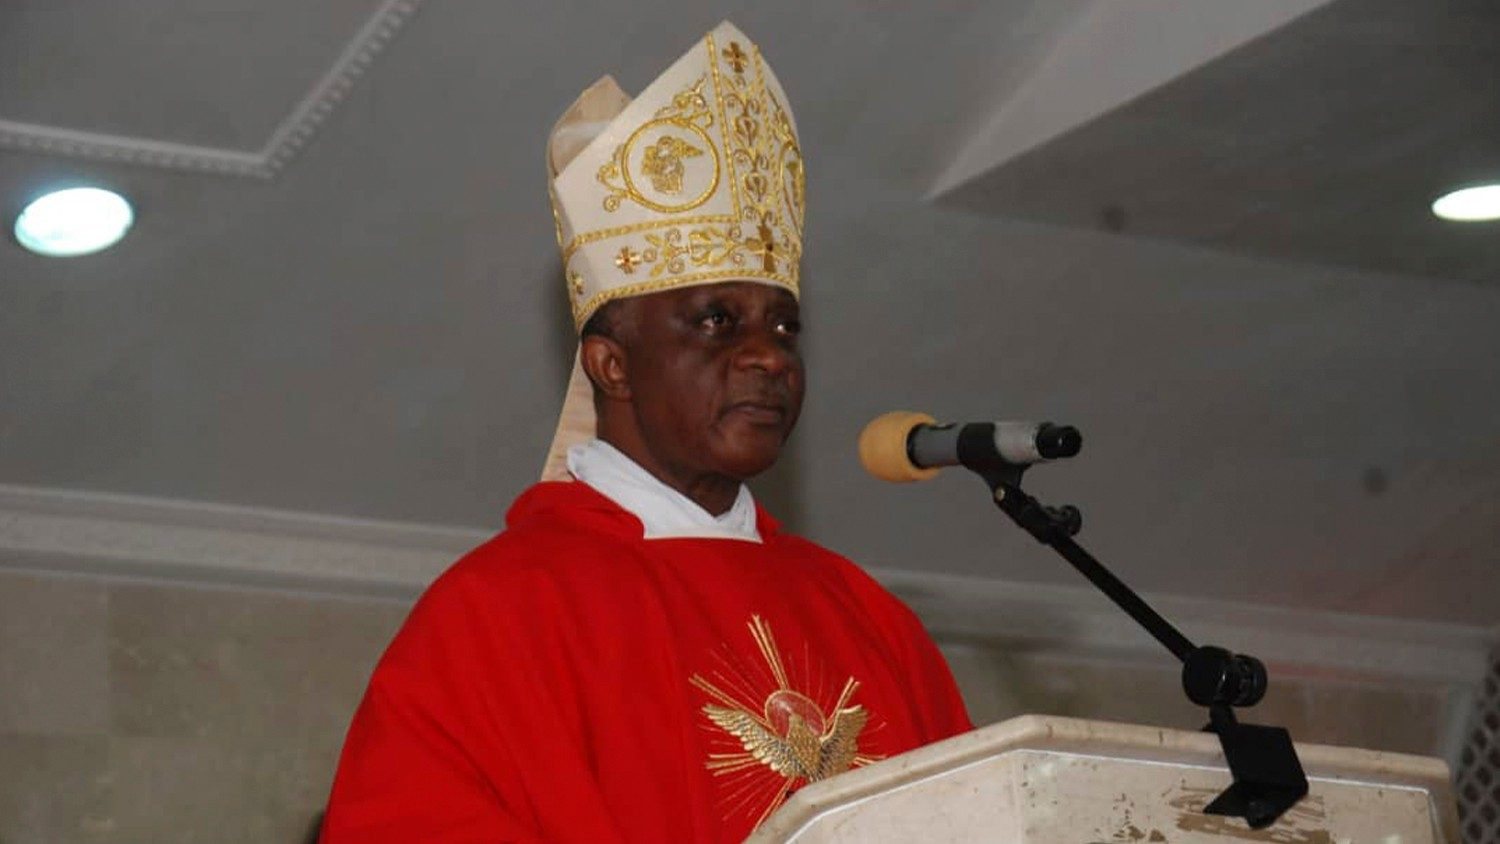 Nigeria: Archbishop Martins calls for a return to the true spirit of Federation - Vatican News